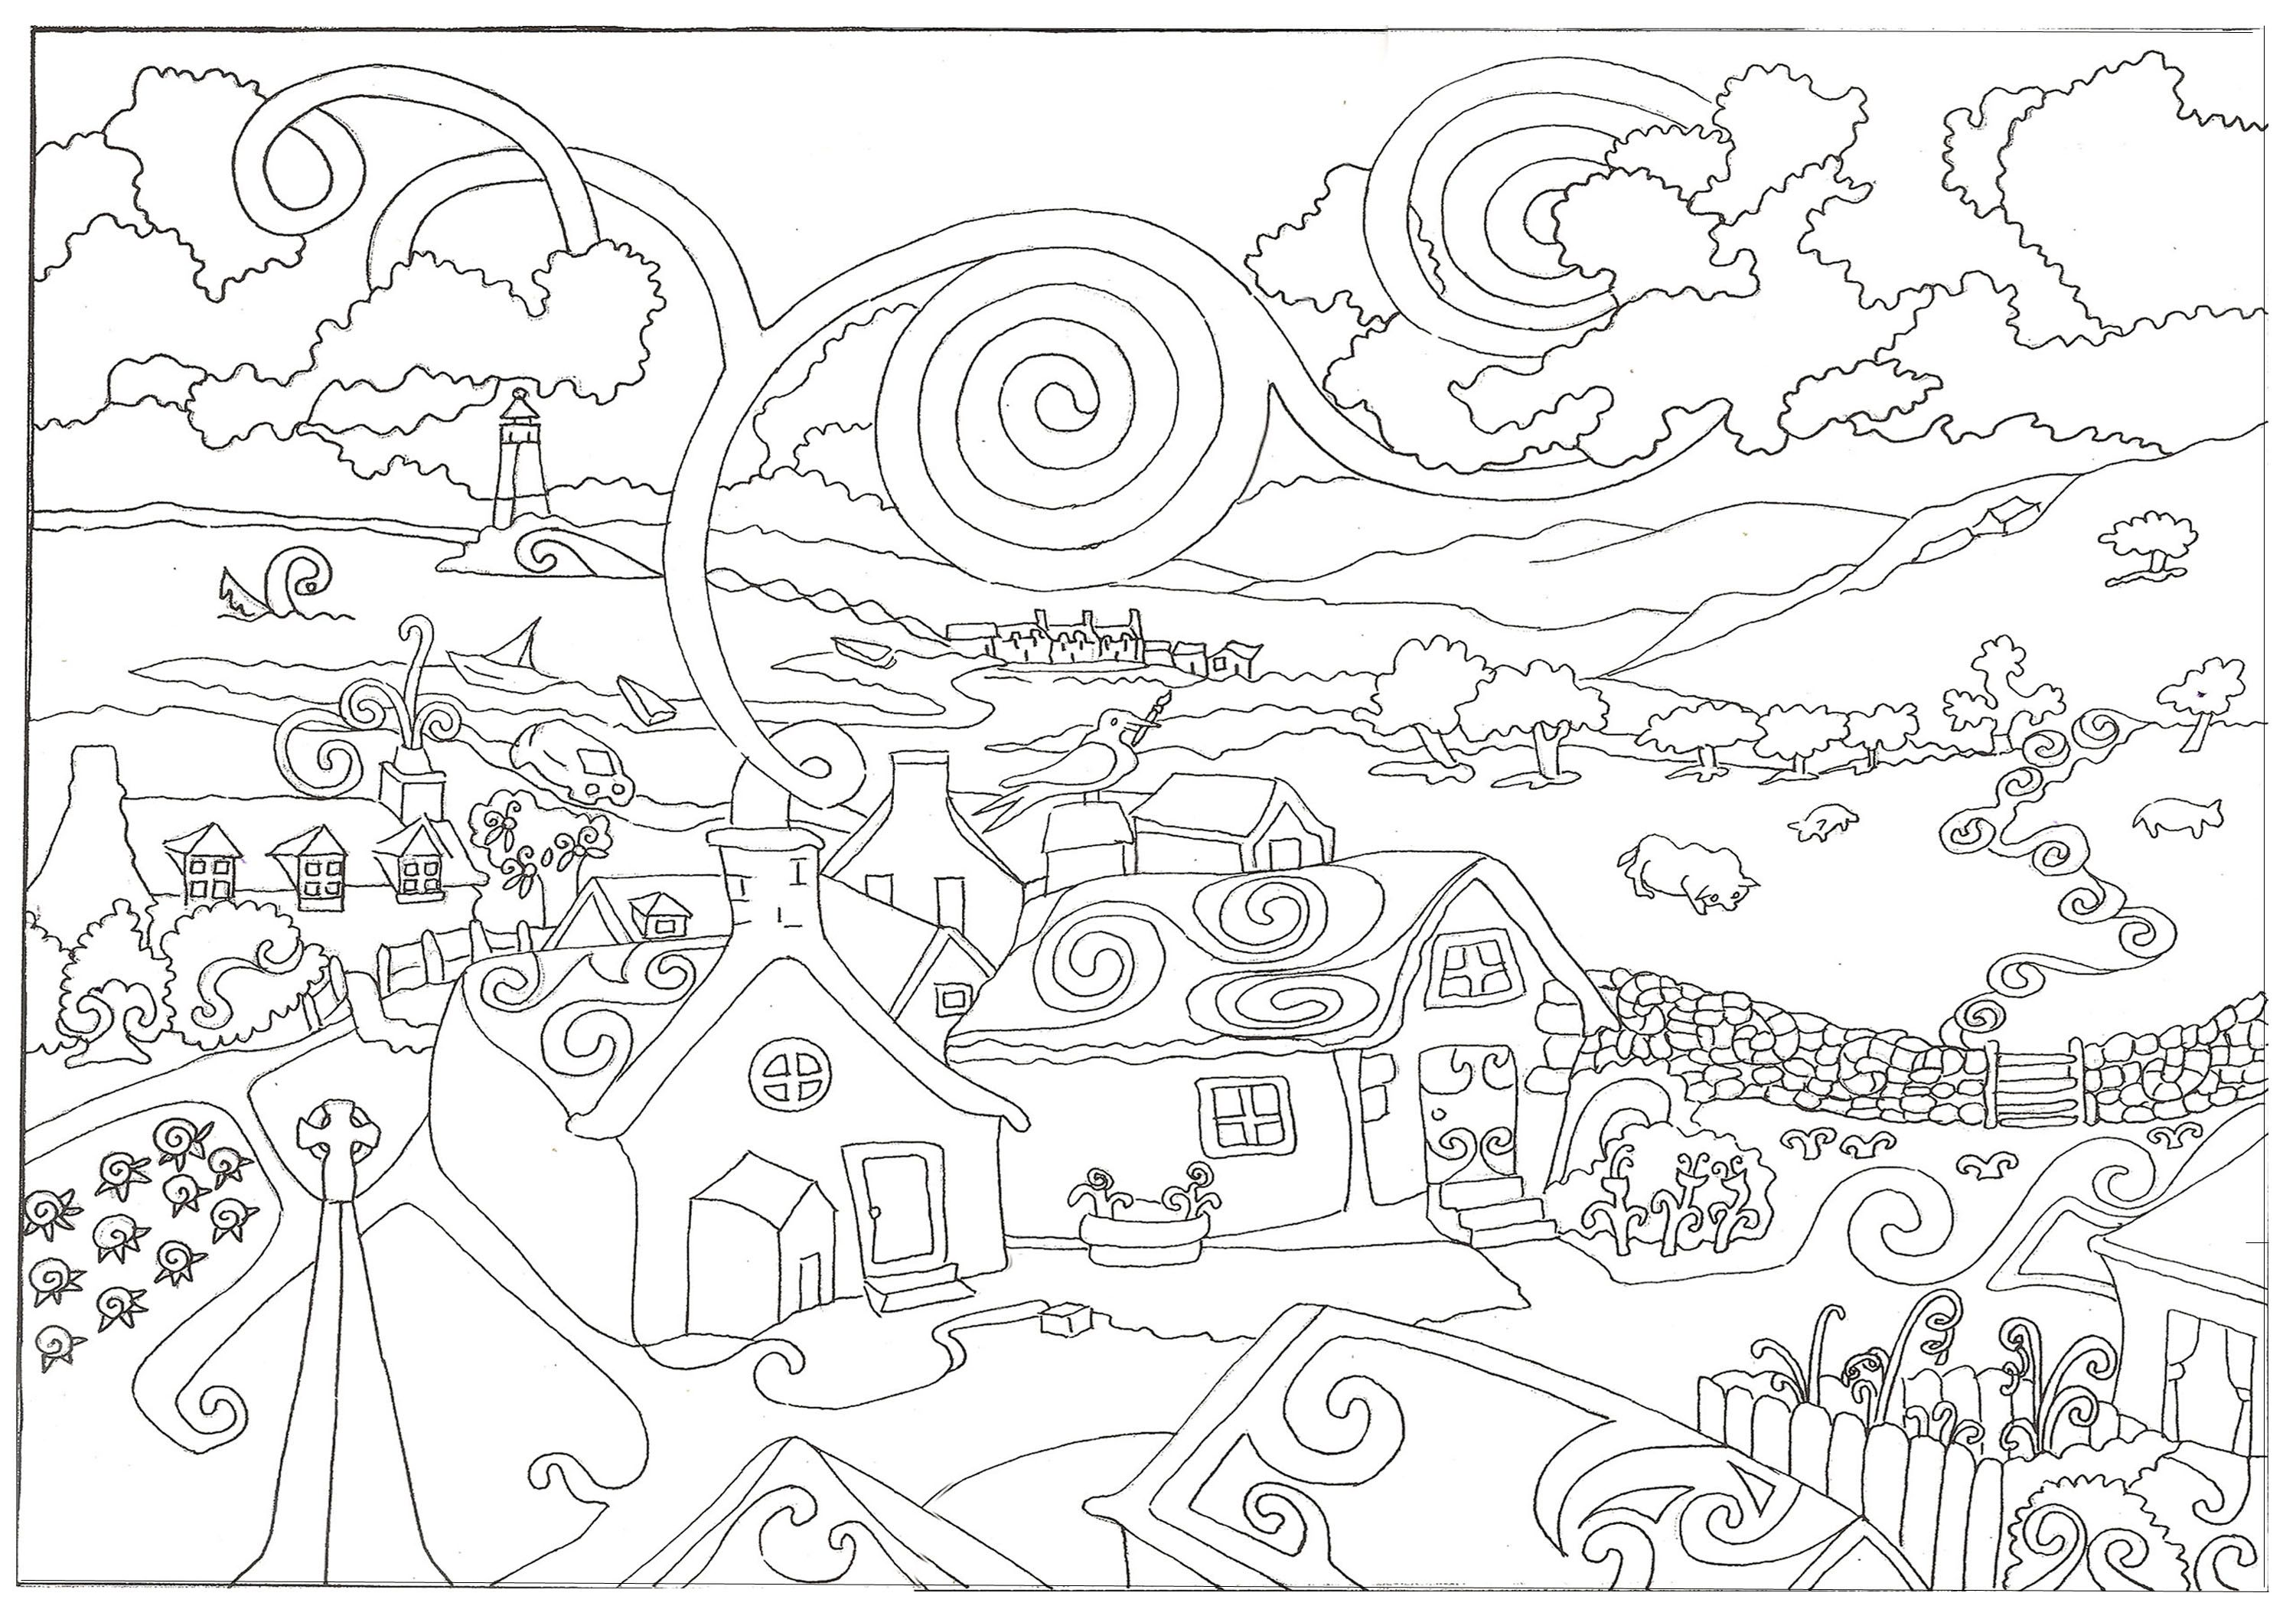 Coloring Pages Advanced Coloring Pages For Older Kids free detailed coloring pages for older kids az summer printable kids